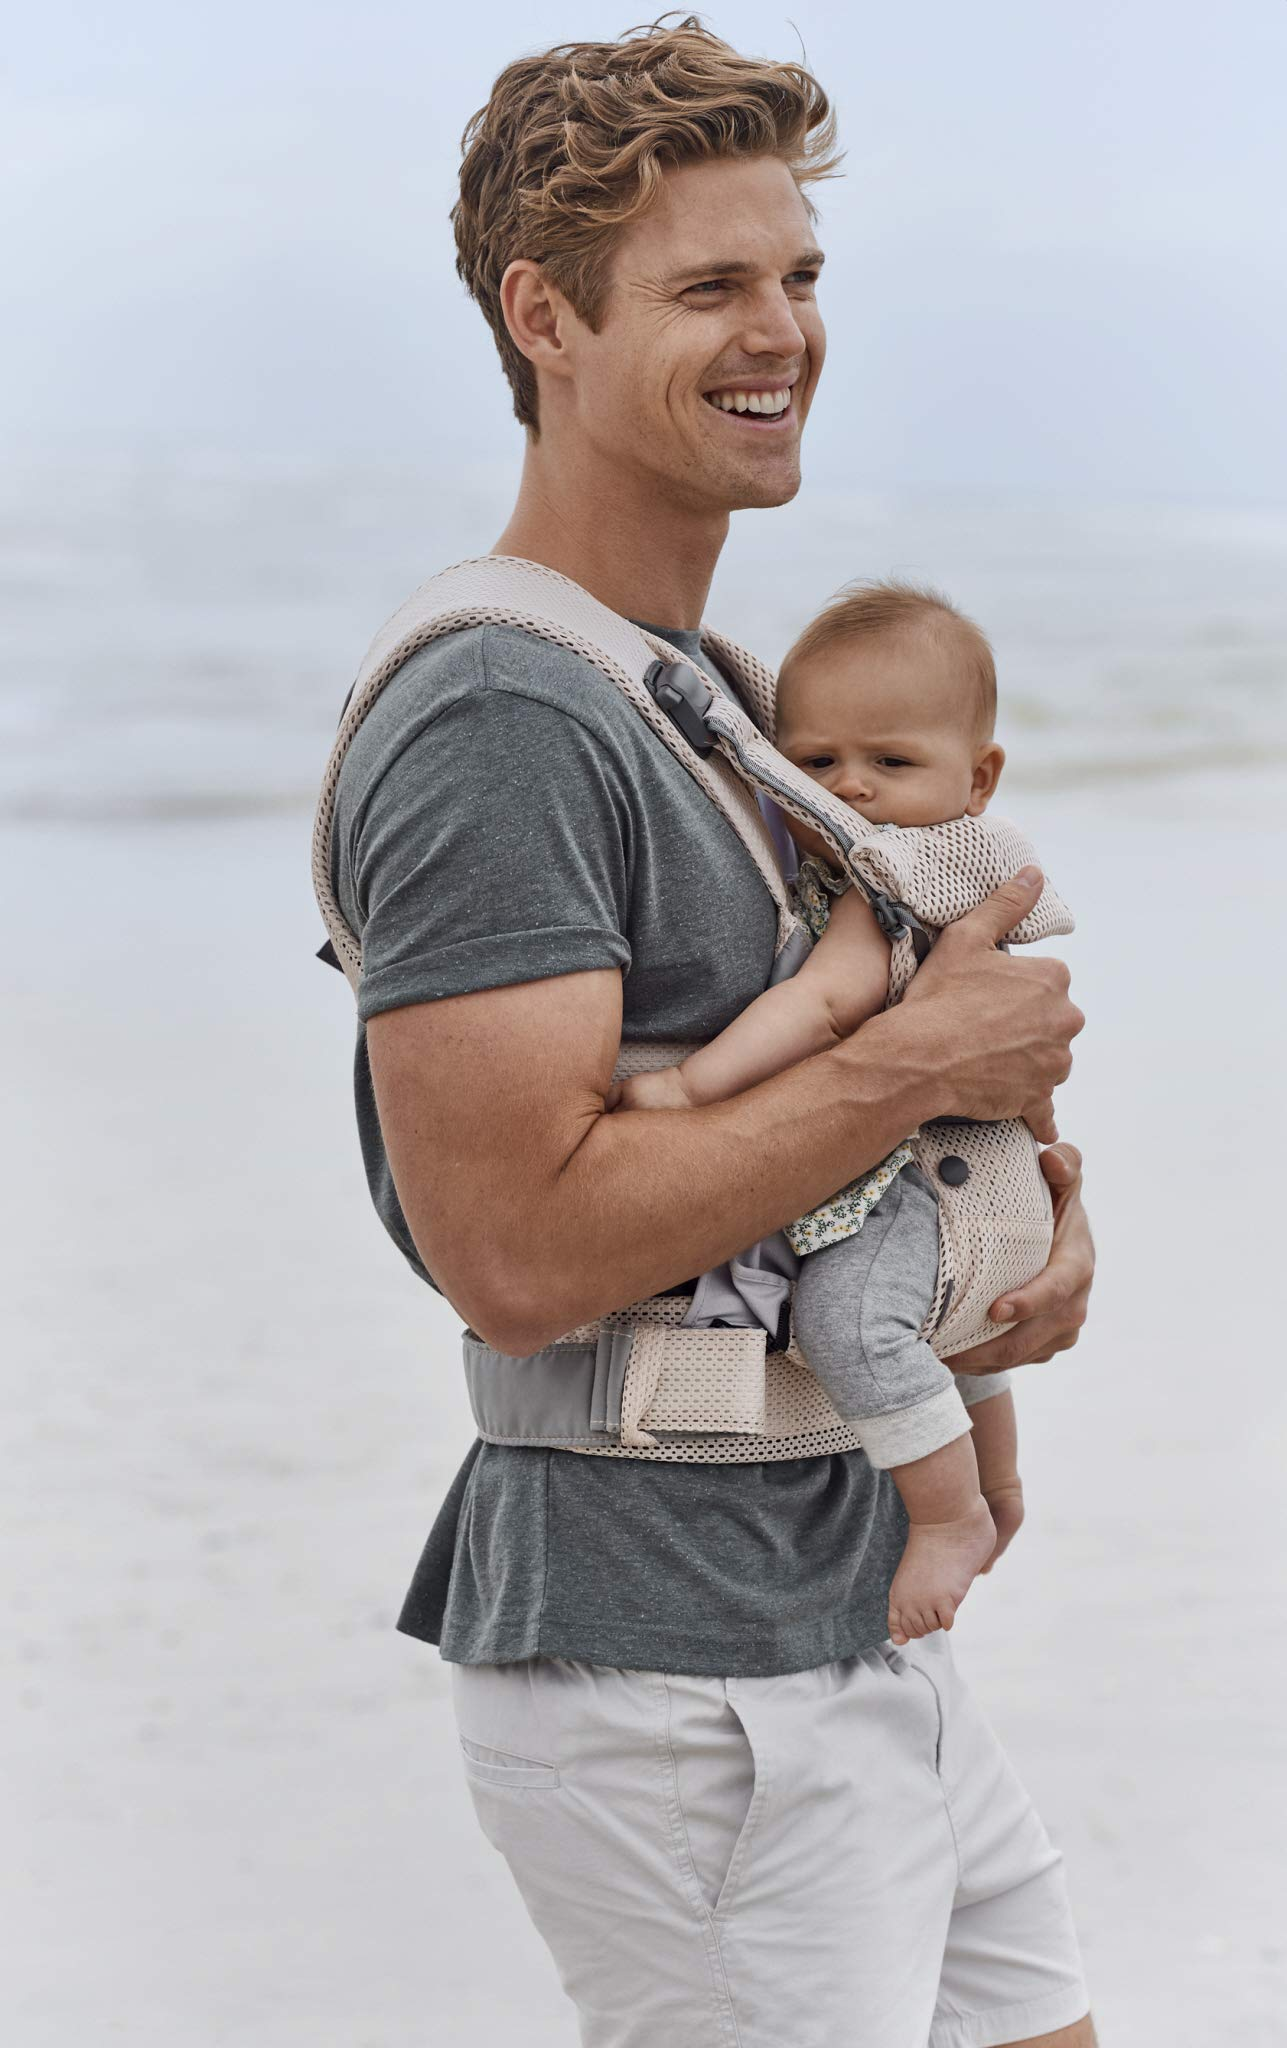 BABYBJÖRN Baby Carrier One, Cotton Mix, Black, 2018 Edition Baby Bjorn The latest version with soft and breathable mesh that dries quickly Ergonomic baby carrier with excellent support 4 carrying positions: facing in (two height positions), facing out or on your back 7